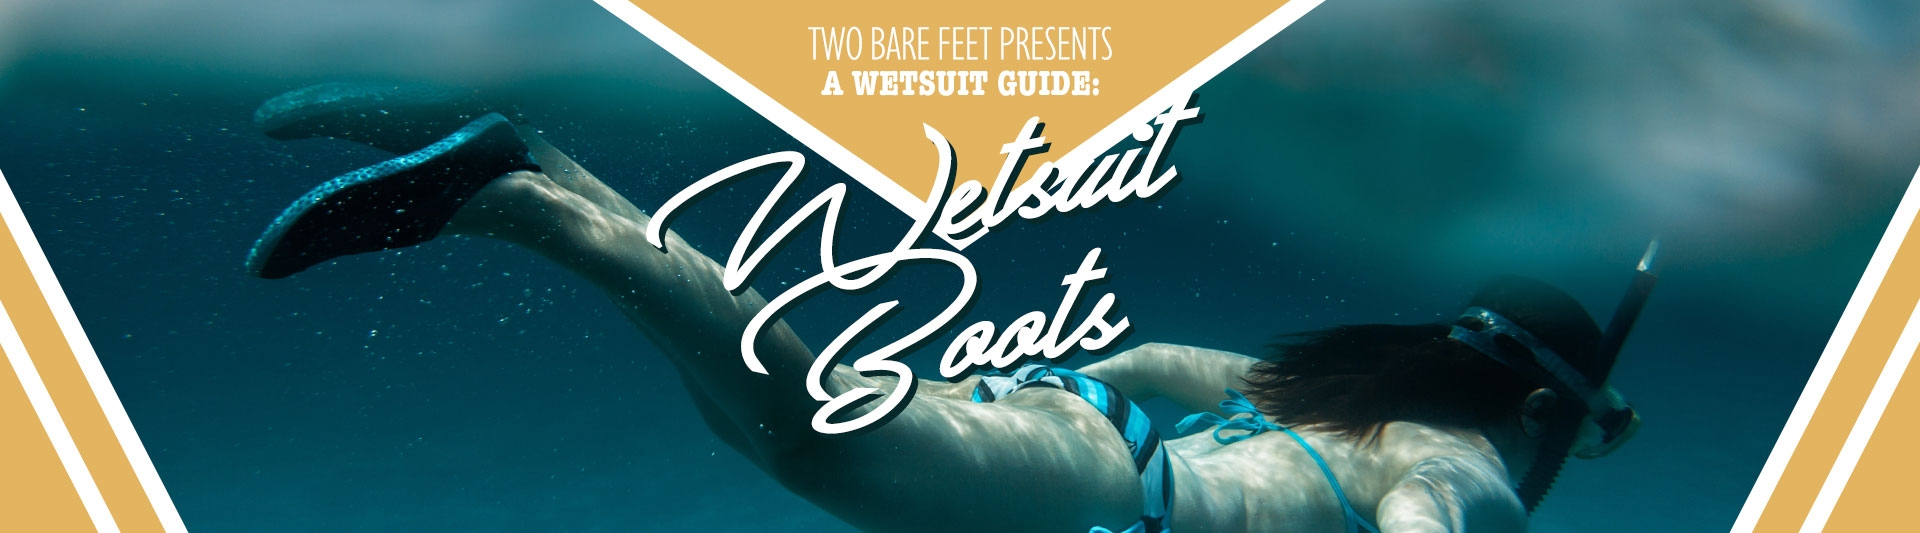 wetsuit boots banner